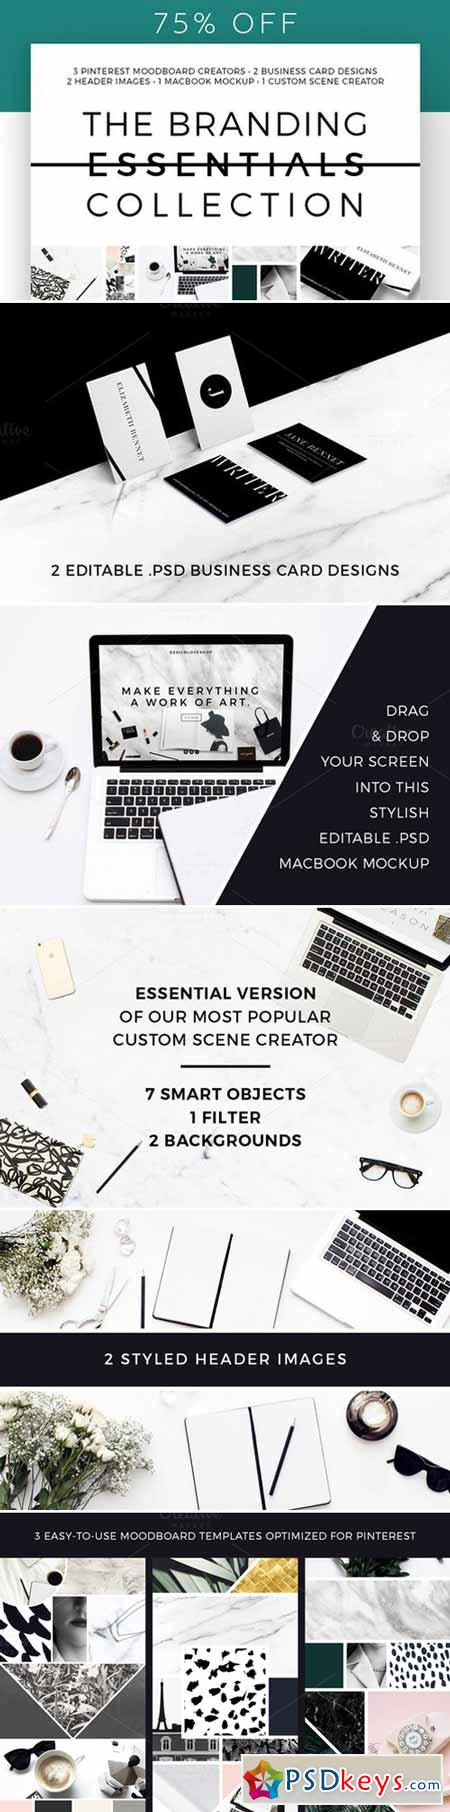 The Branding Essentials Collection 401689